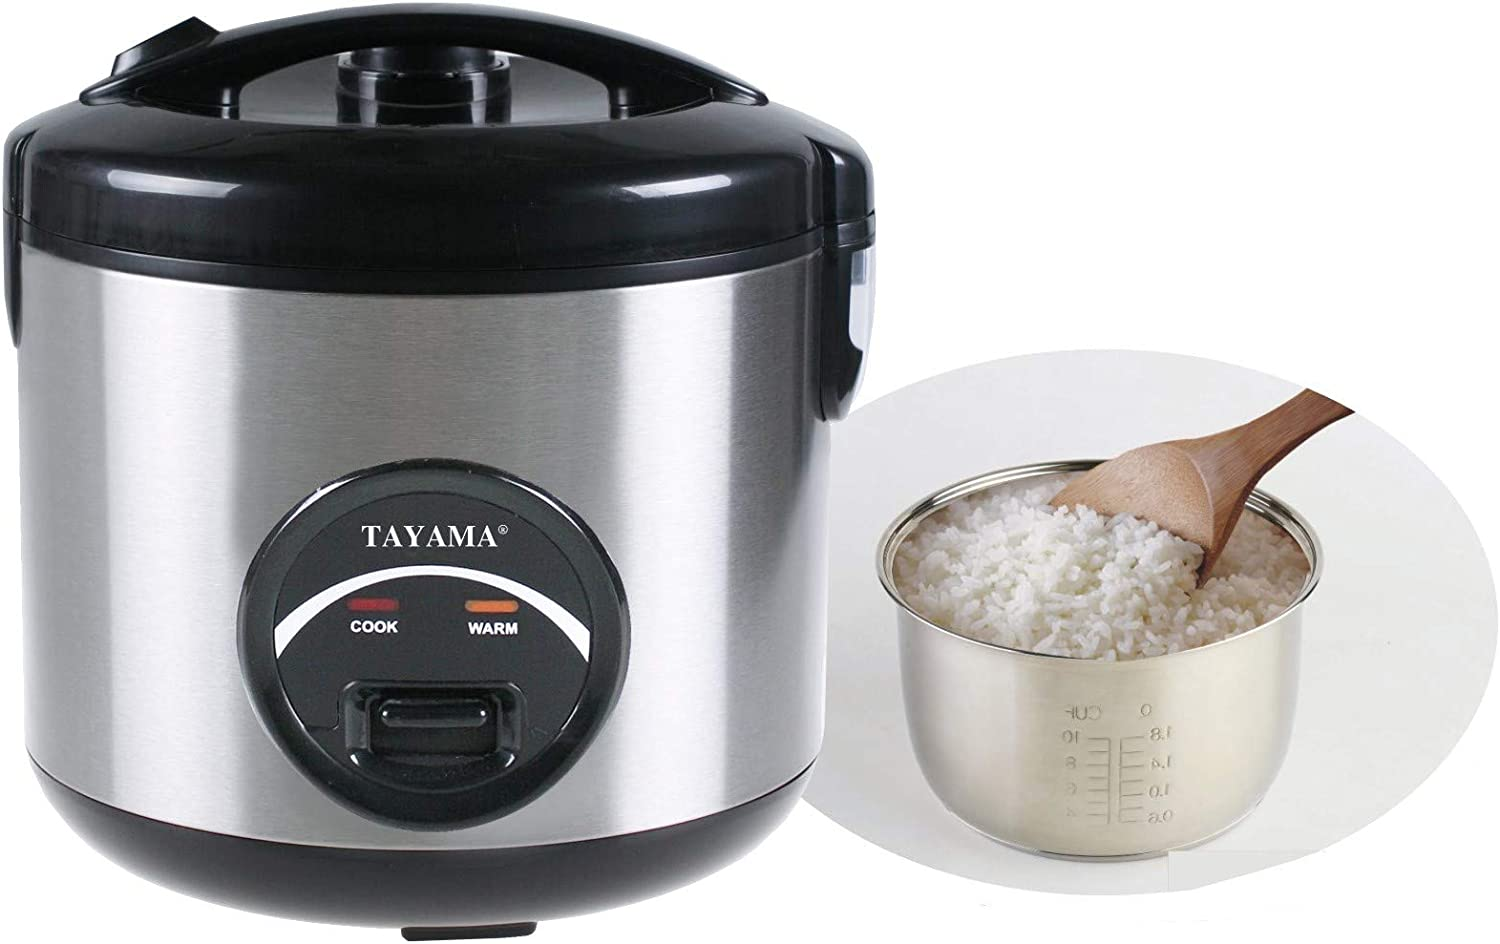 Tayama Stainless Steel Rice Cooker